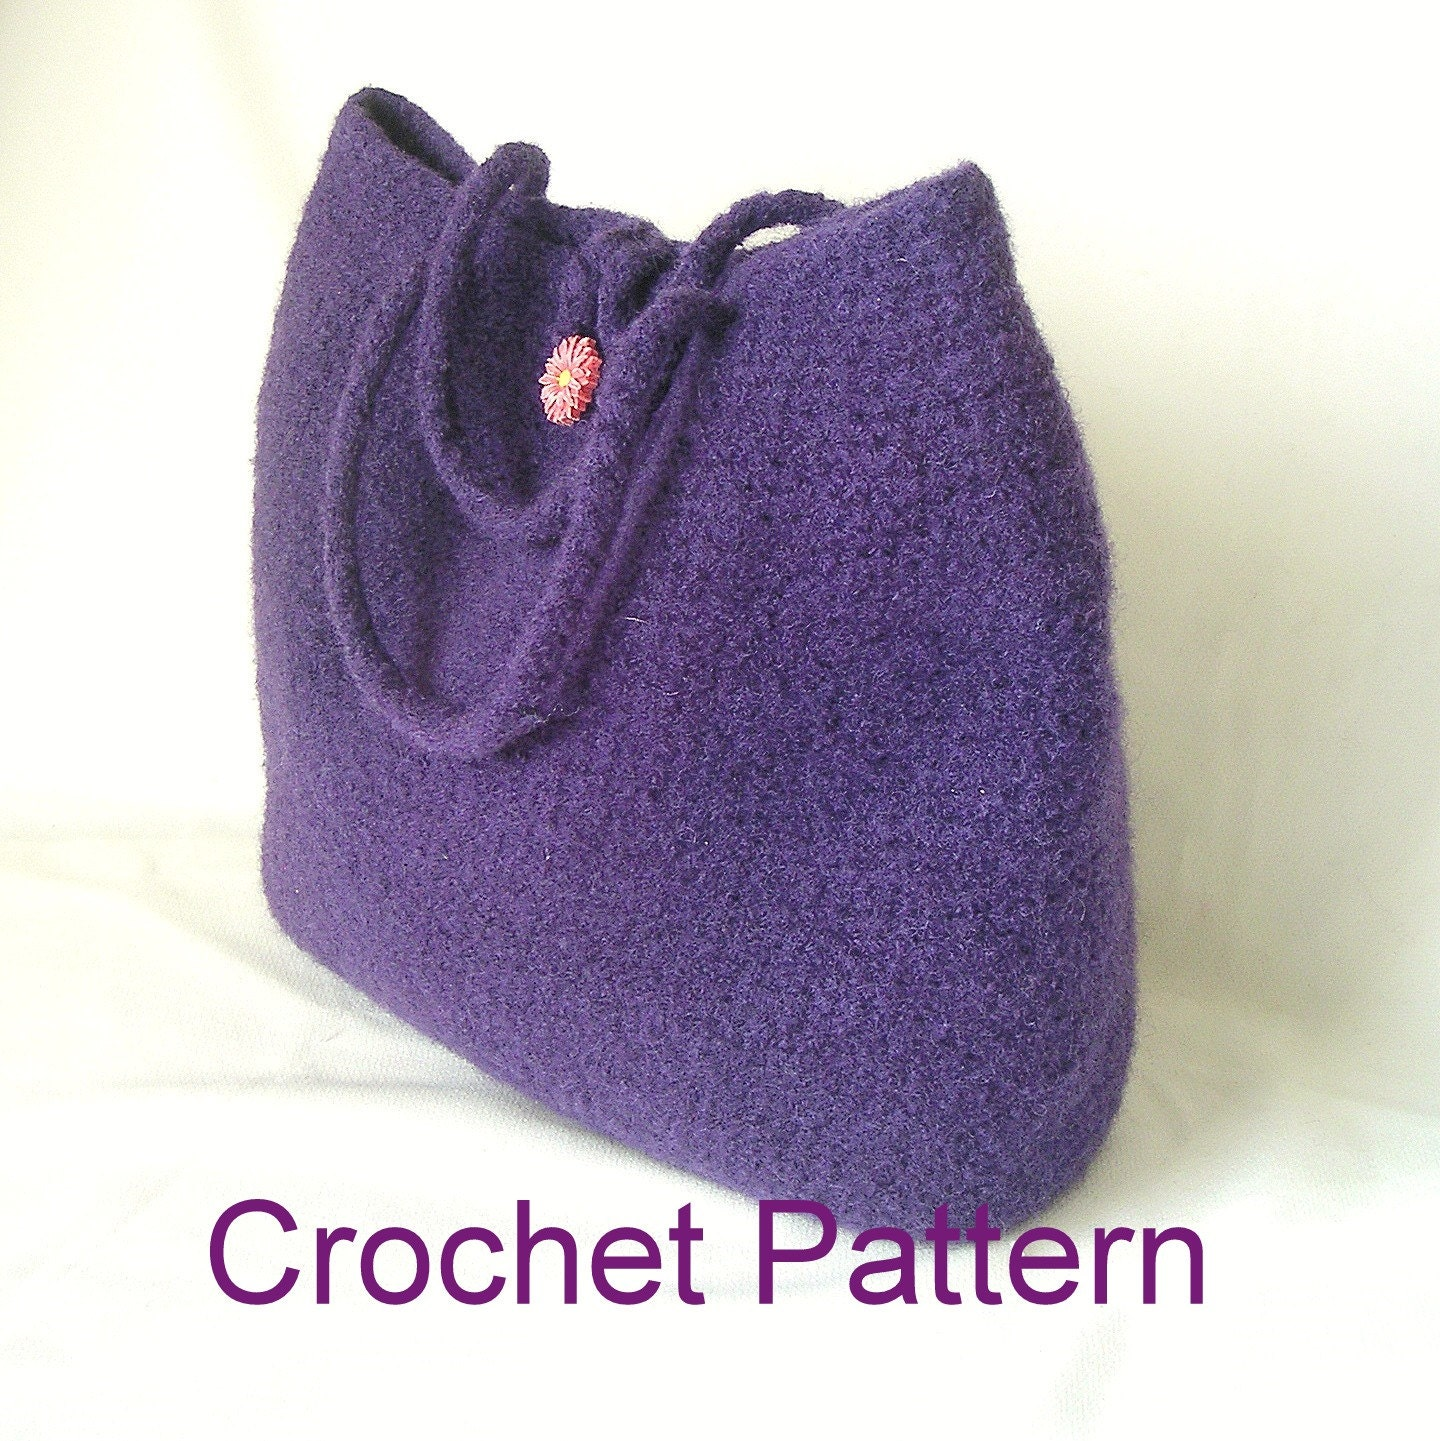 Simple Crochet Bag Pattern : Felted Bag Crochet Bag Pattern Tutorial pdf Crochet by GraceG2